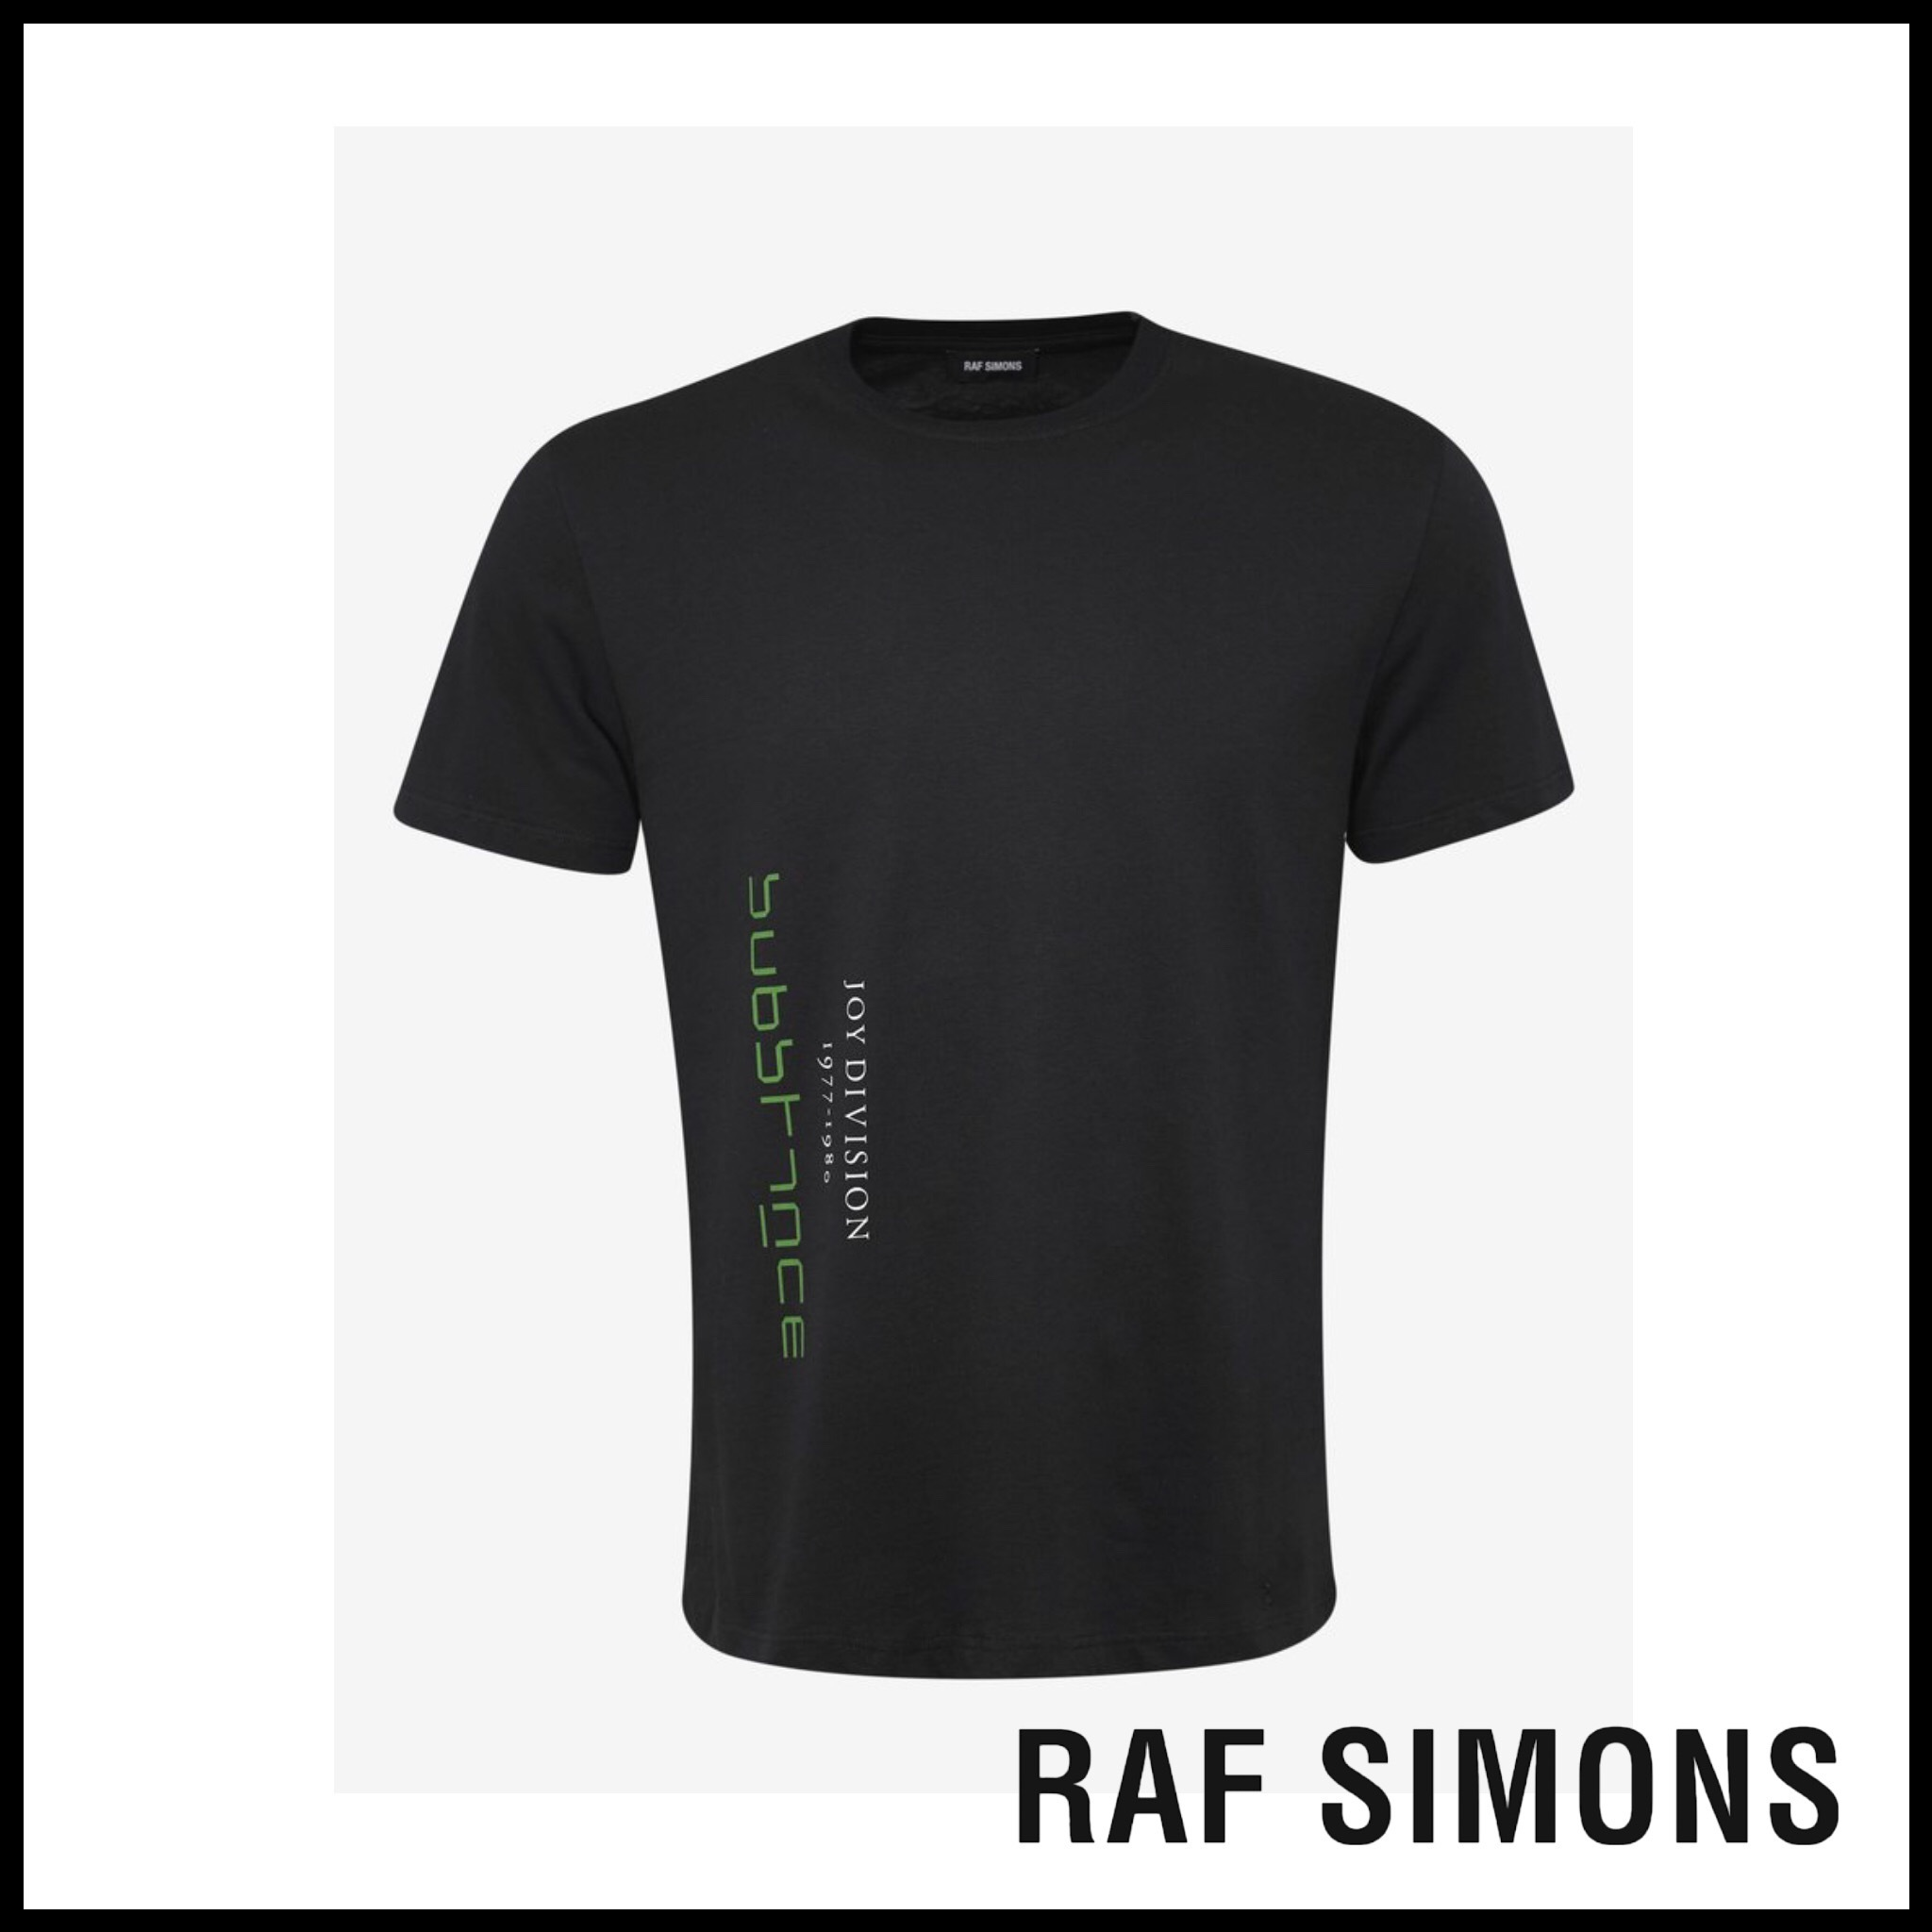 RAF SIMONS☆Black Joy Division Print Slim Fit T-Shirt